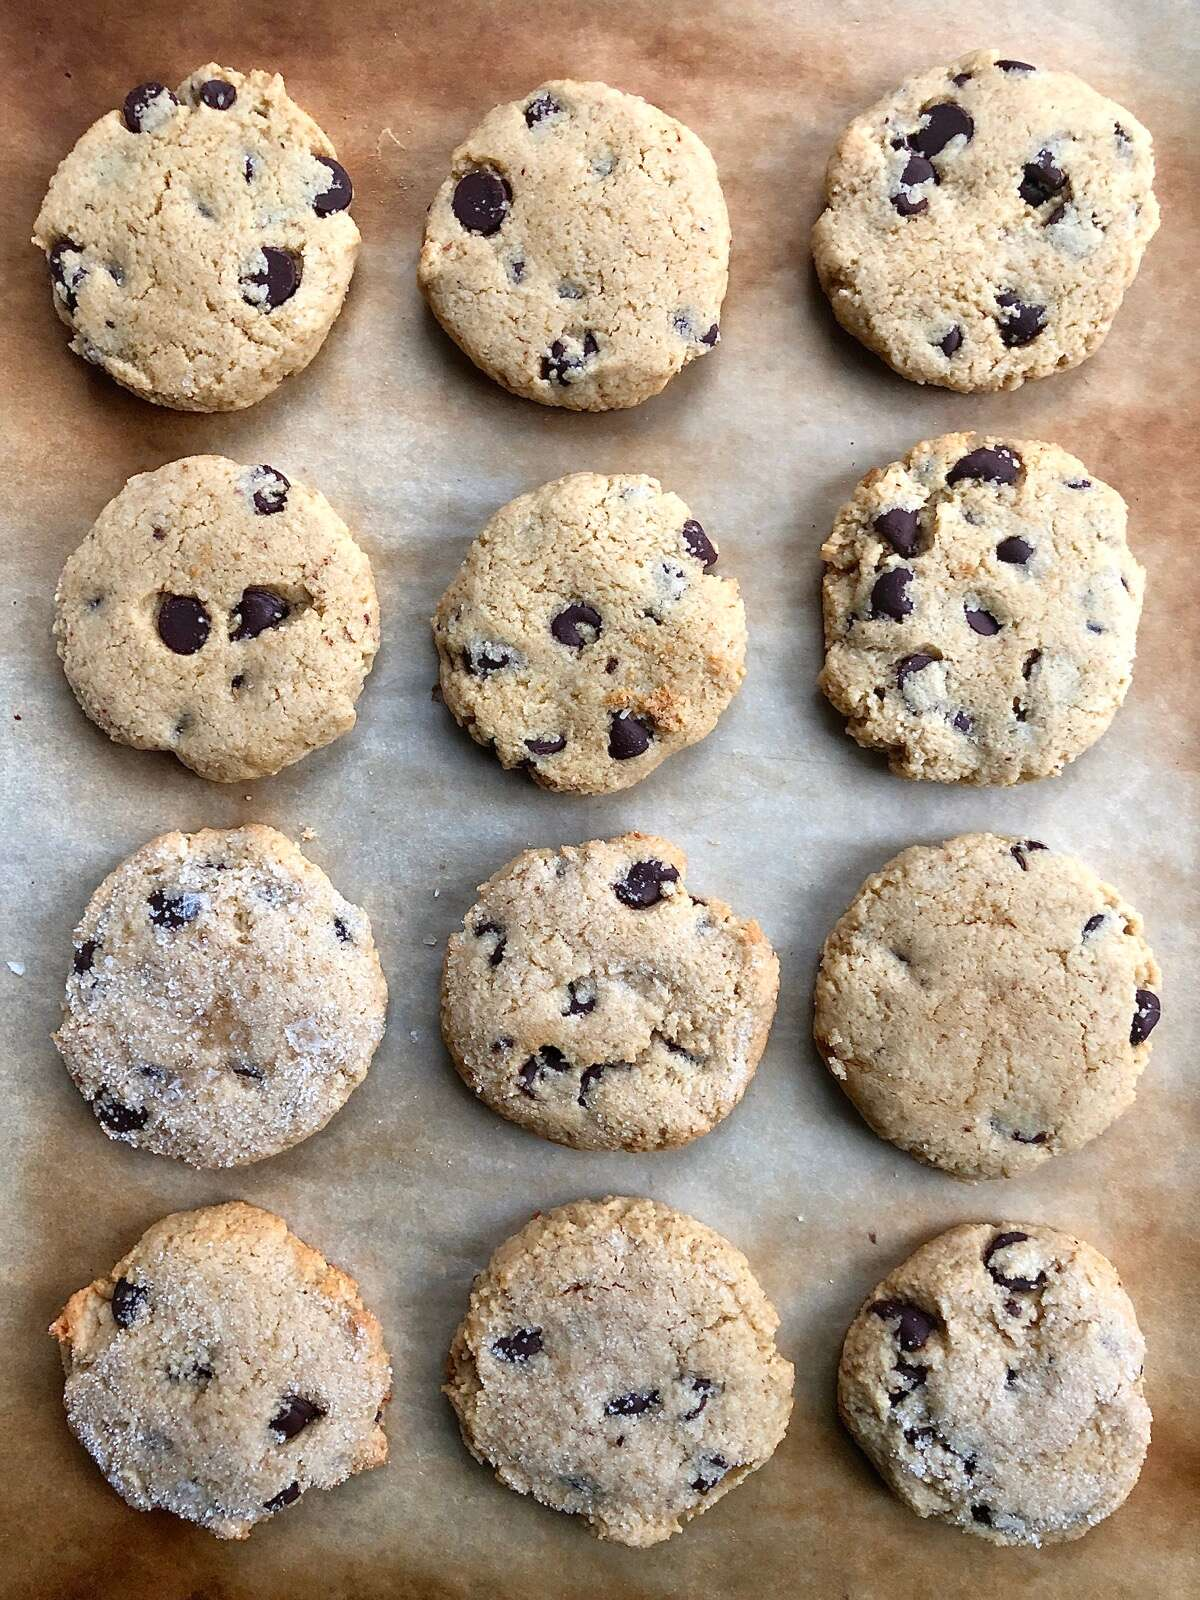 Gluten-Free Almond Flour Chocolate Chip Cookies on a baking sheet.